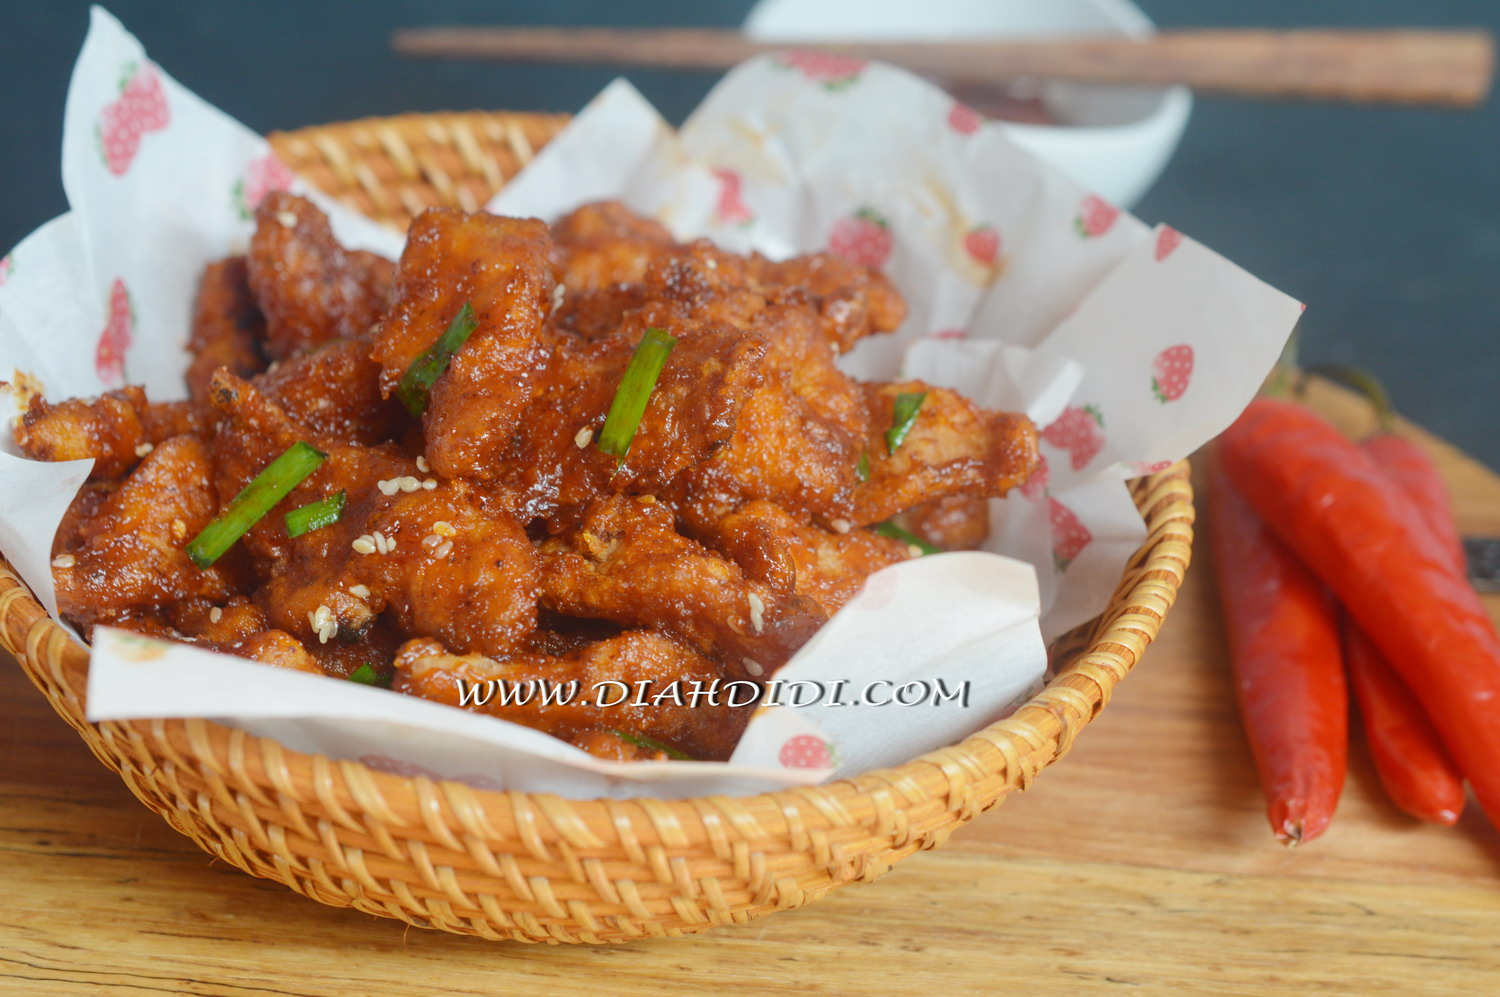 Diah Didis Kitchen Chicken Pop Corn Pedas Ala Korea